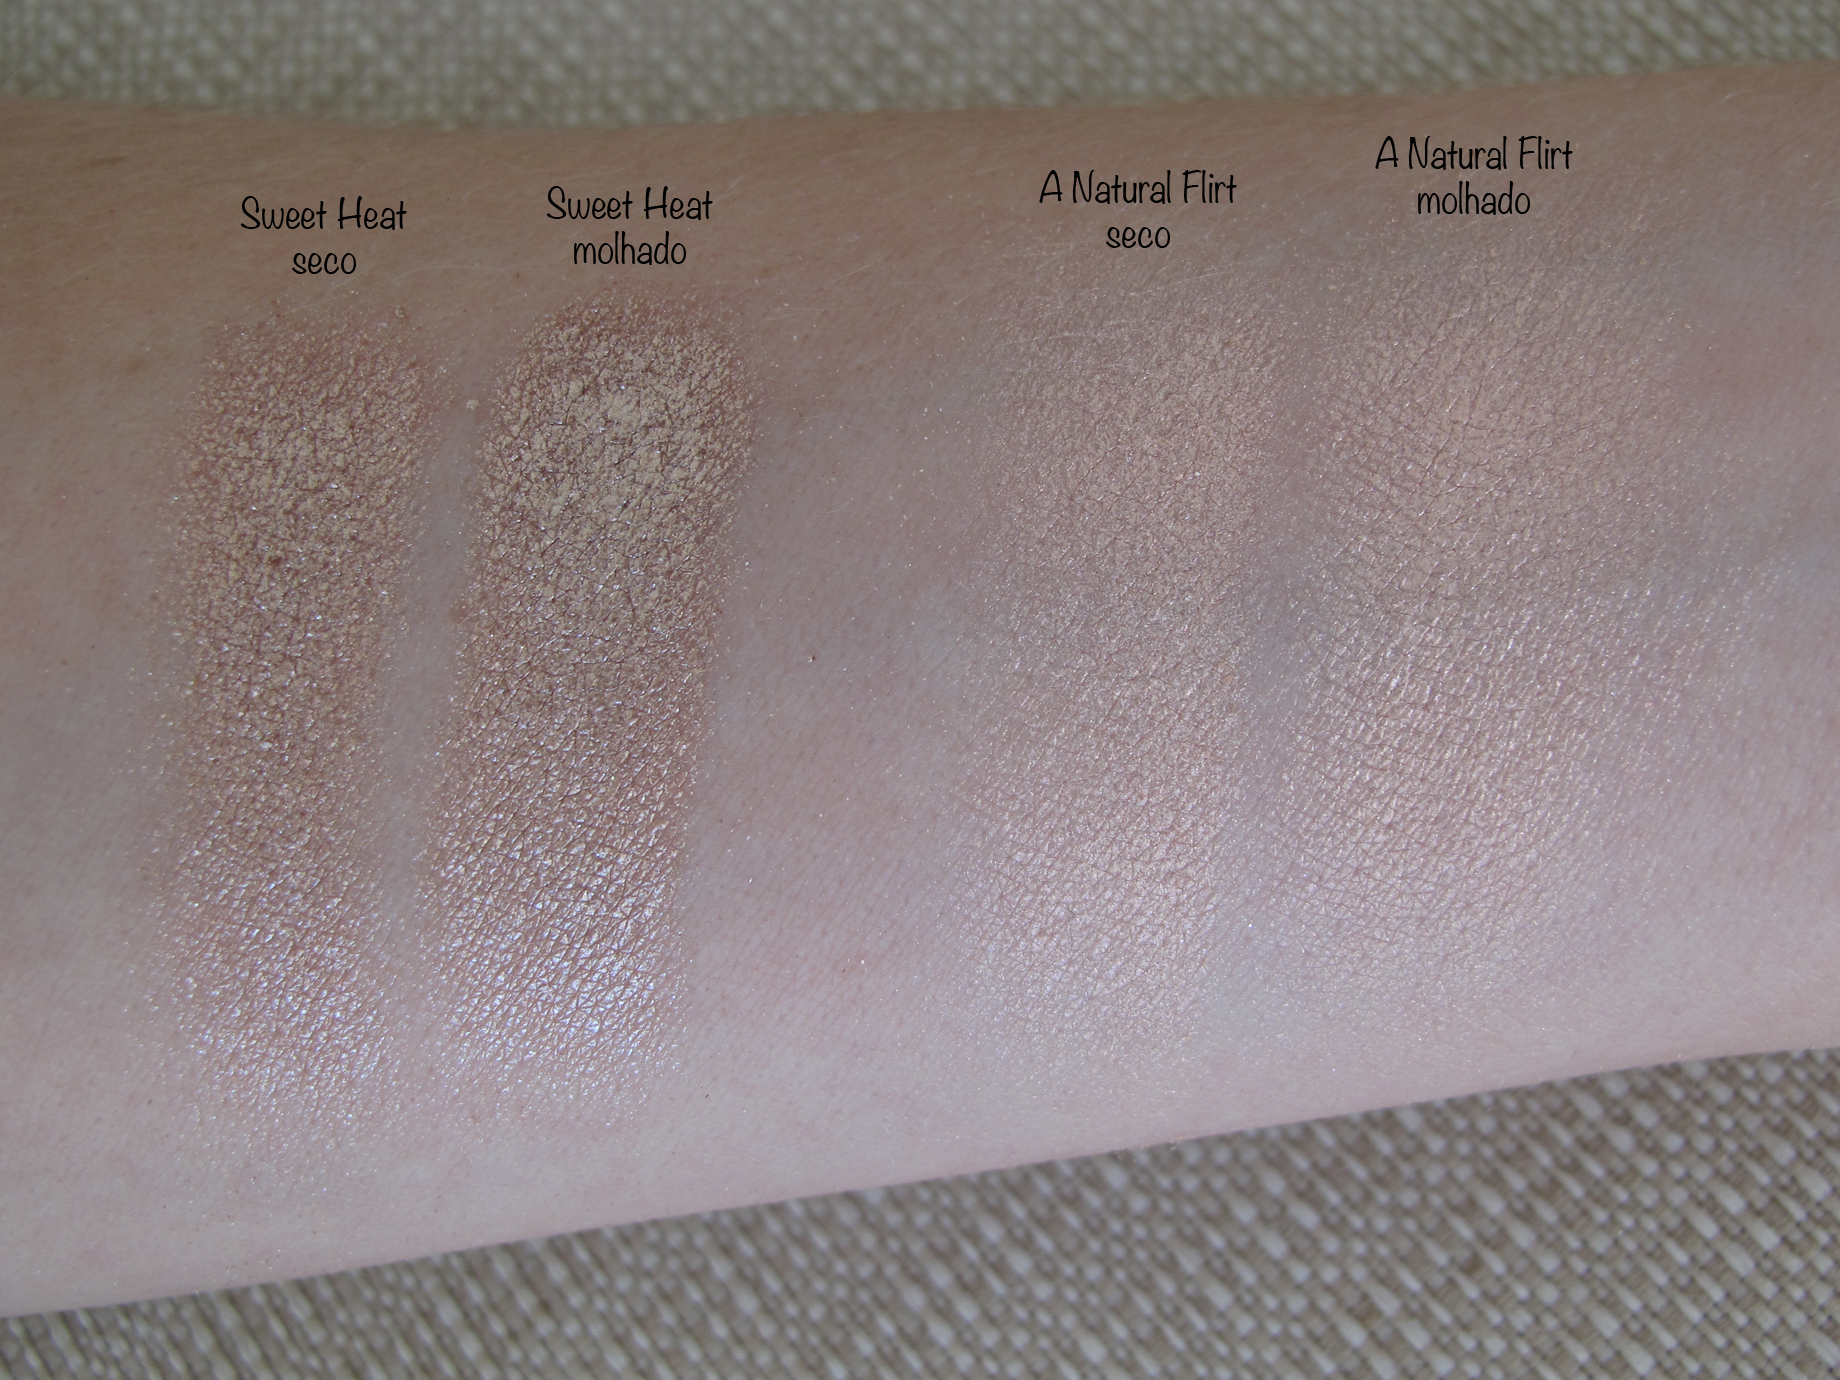 Sweet Heat e A Natural Flirt - Swatch